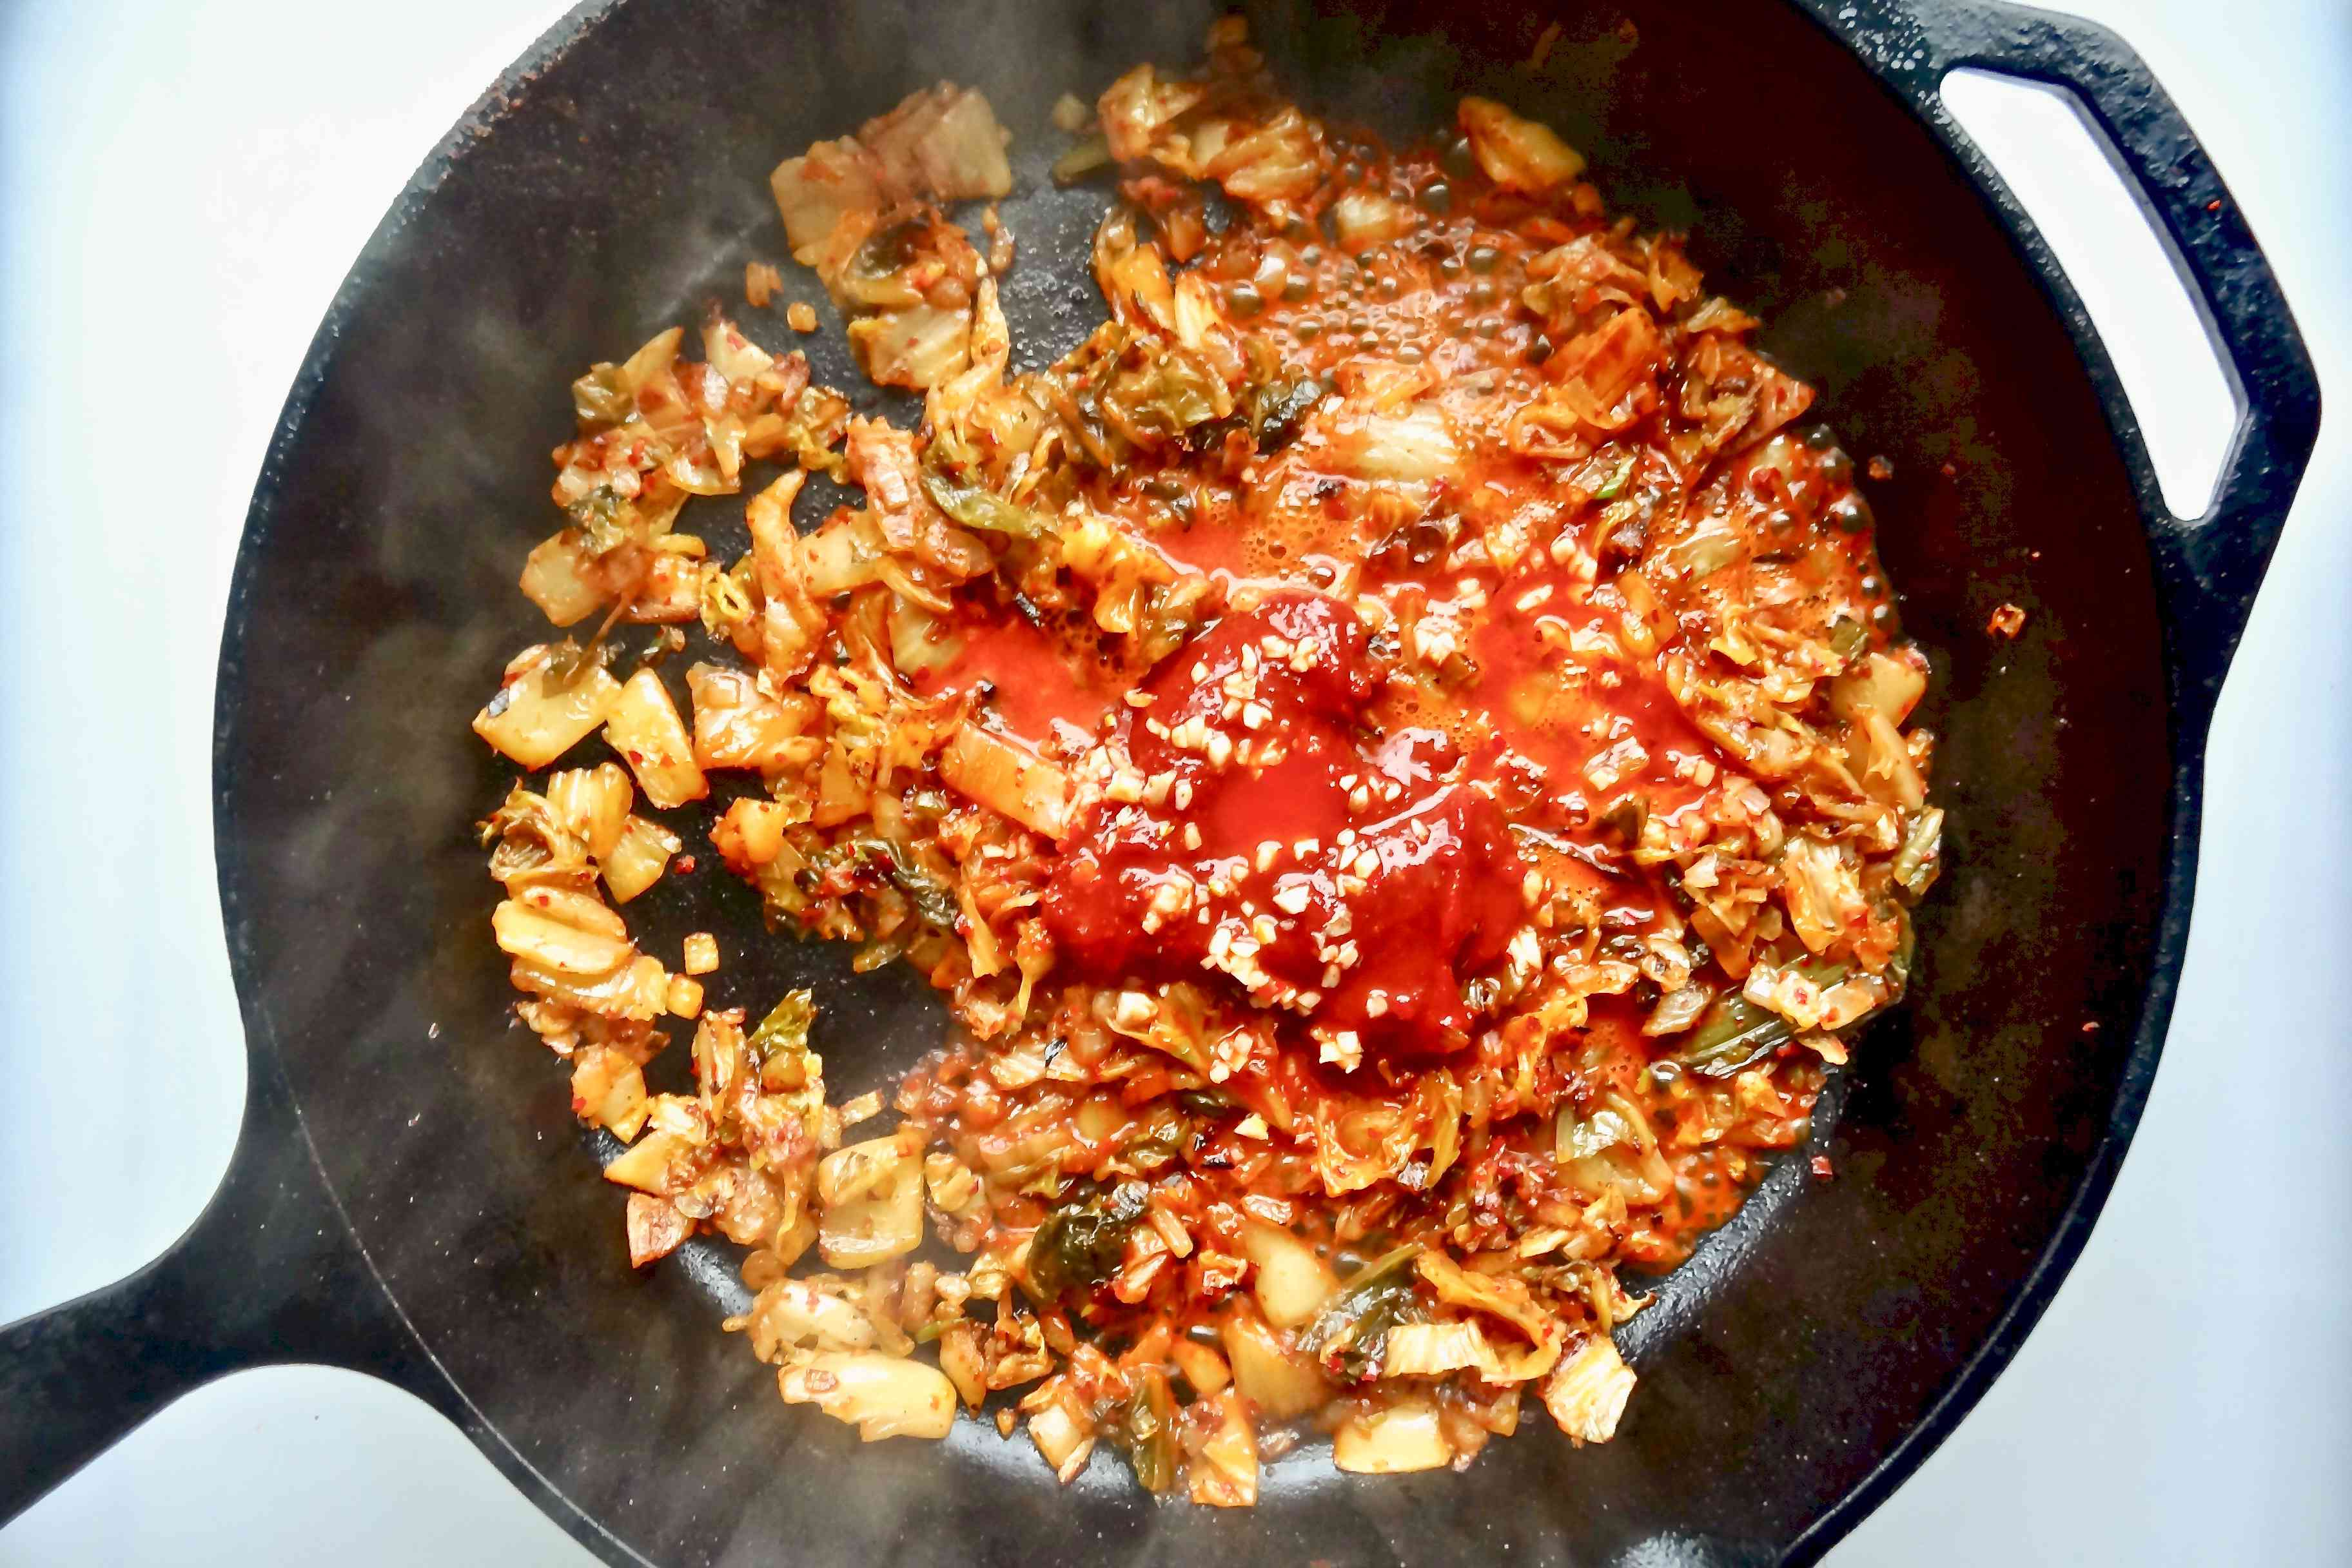 Adding the kimchi juice to the skillet for Korean fried rice with kimchi.